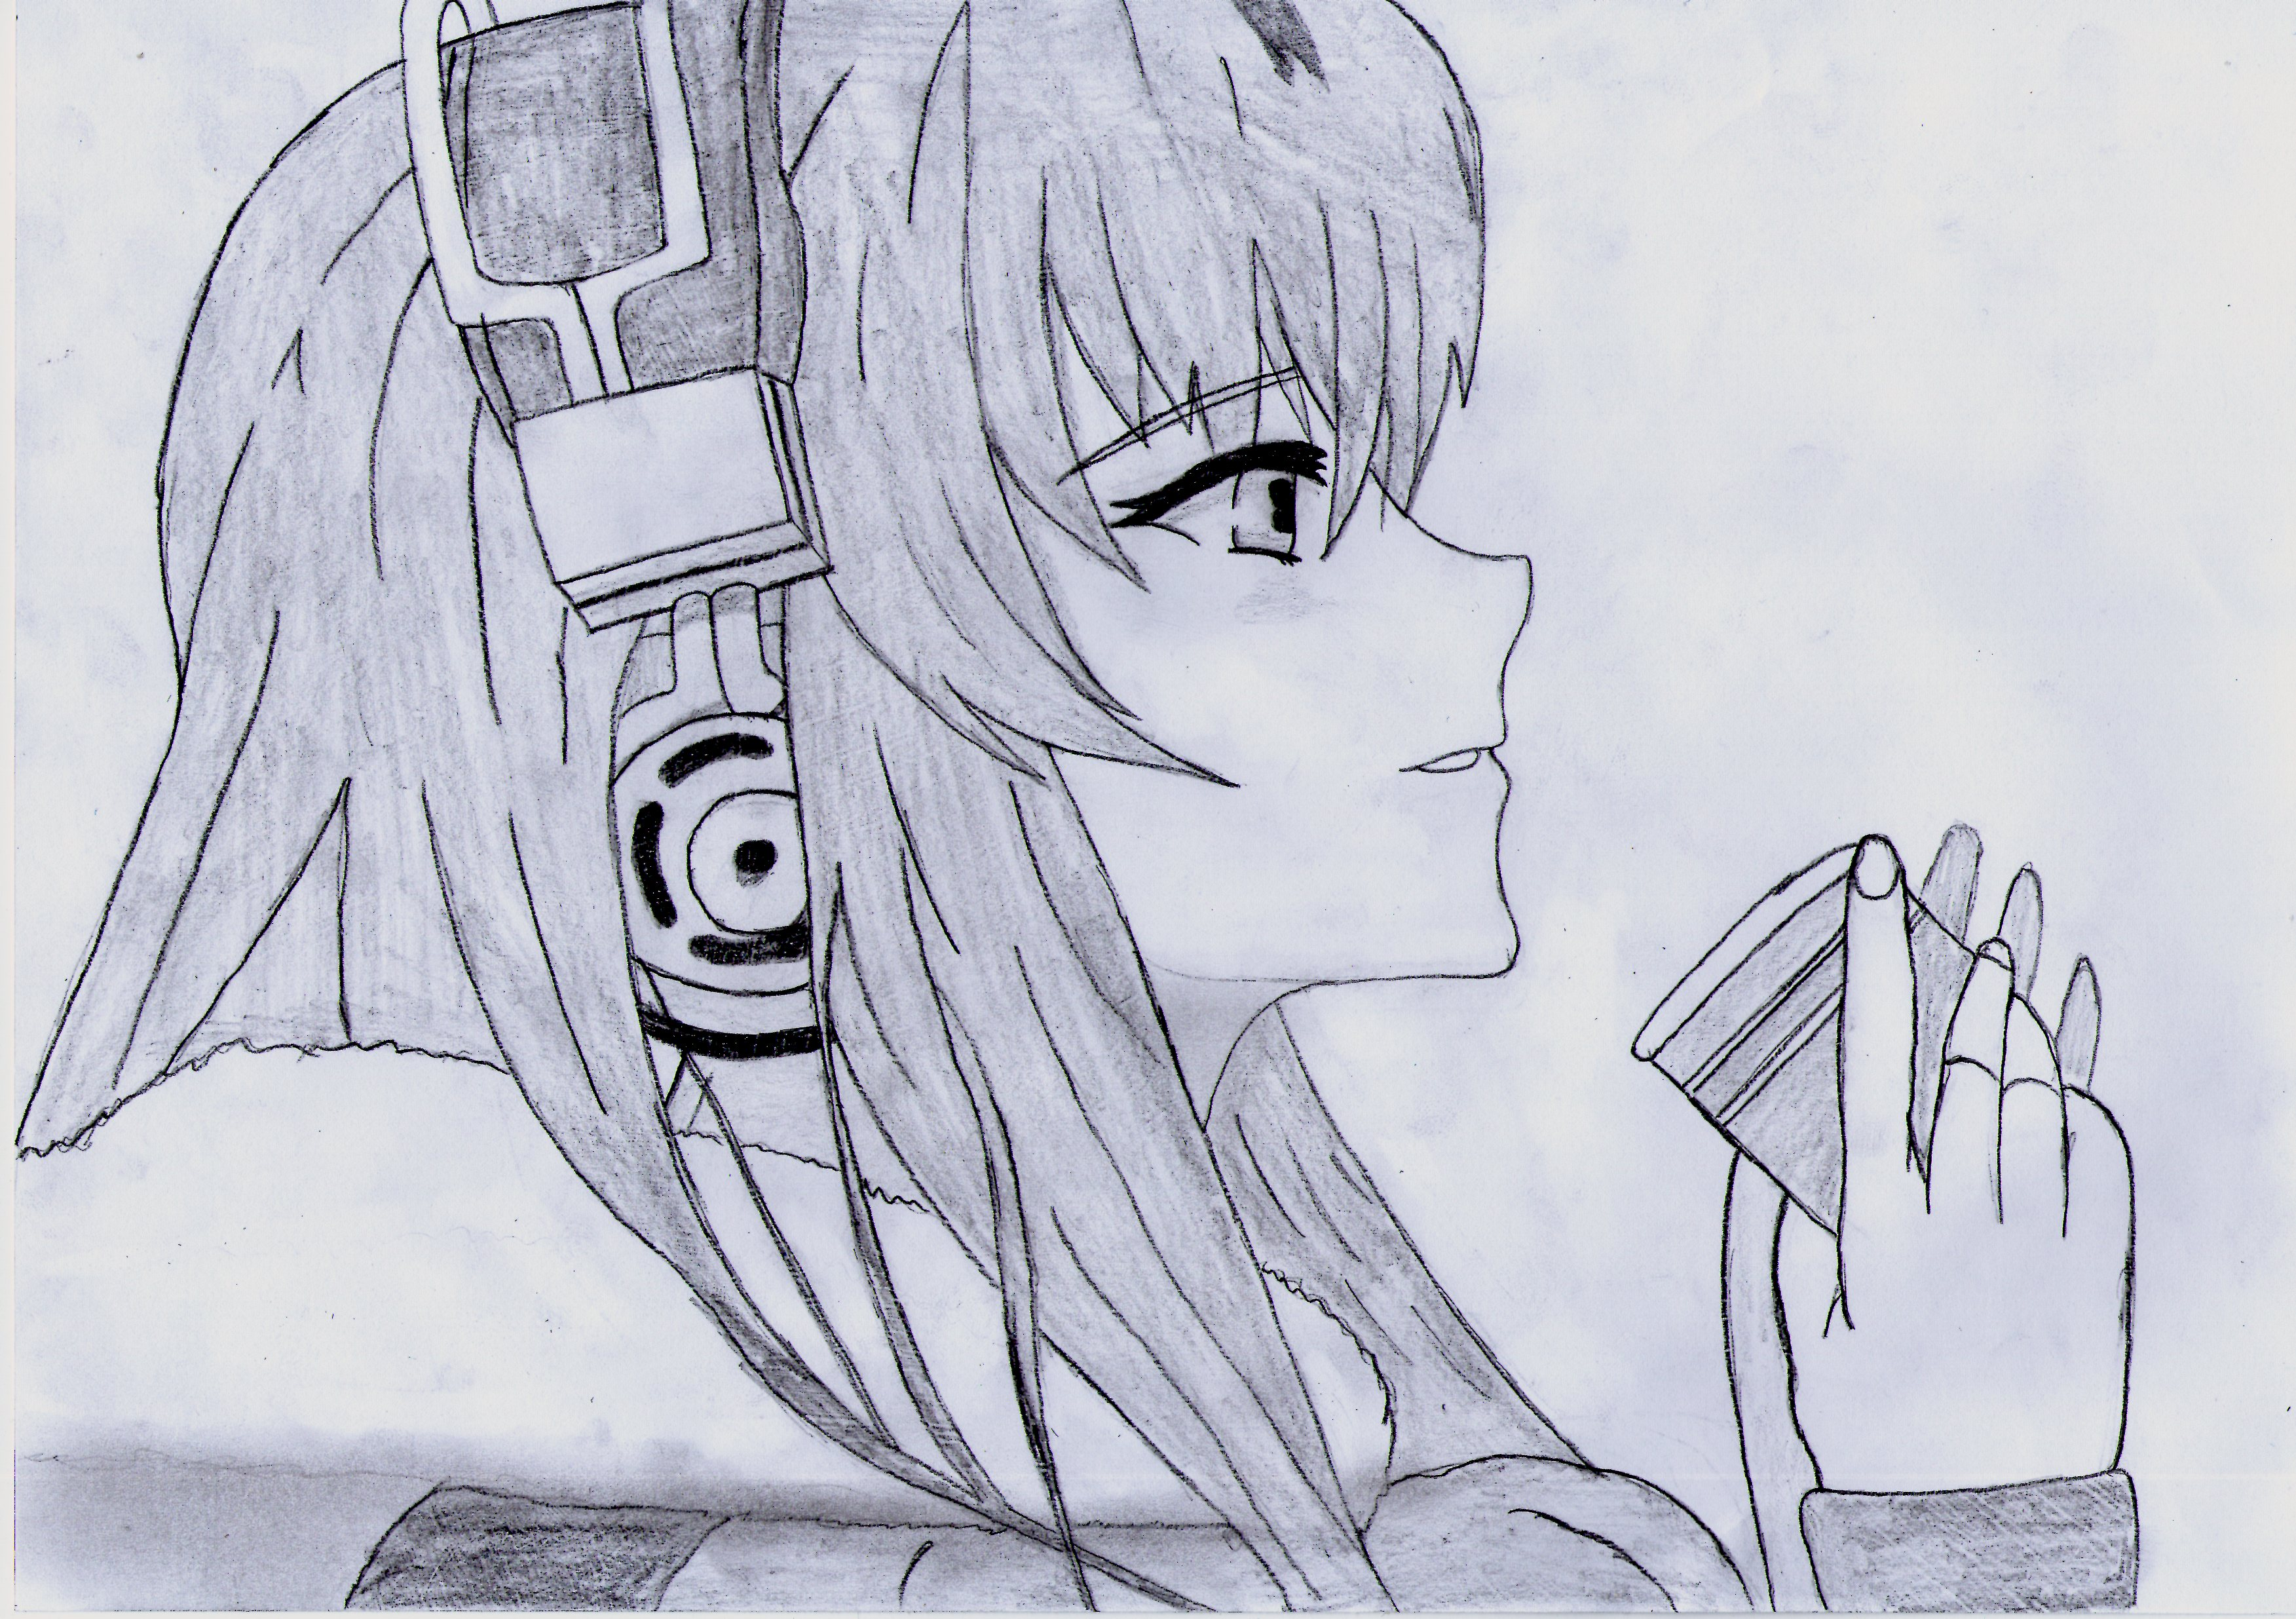 Headphone Anime Girl Drawing By 1DragonWarrior1 On DeviantArt